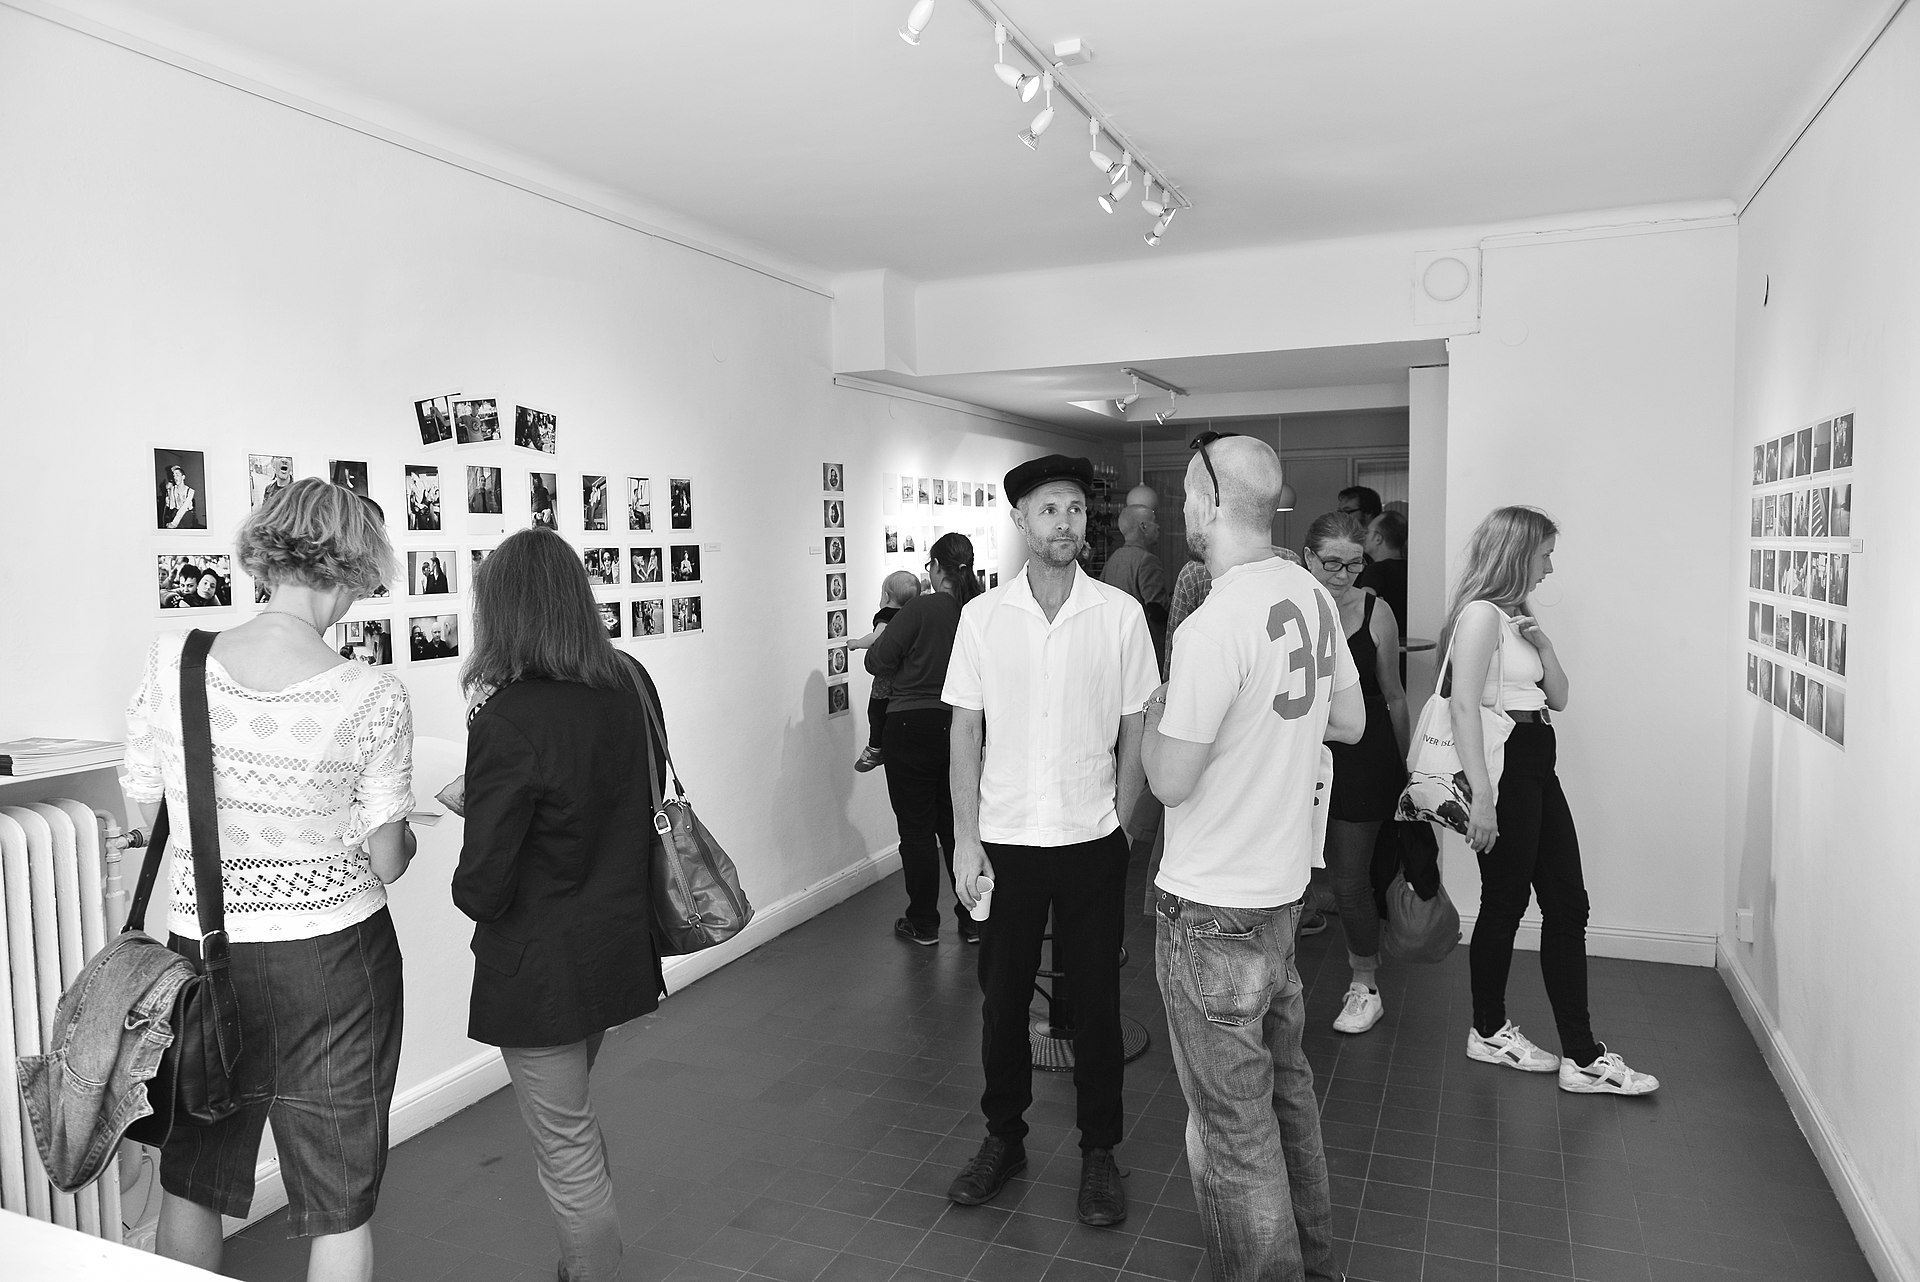 https://upload.wikimedia.org/wikipedia/commons/thumb/a/a8/Galleri_Korn_Vernissage_May_2013.jpg/1920px-Galleri_Korn_Vernissage_May_2013.jpg